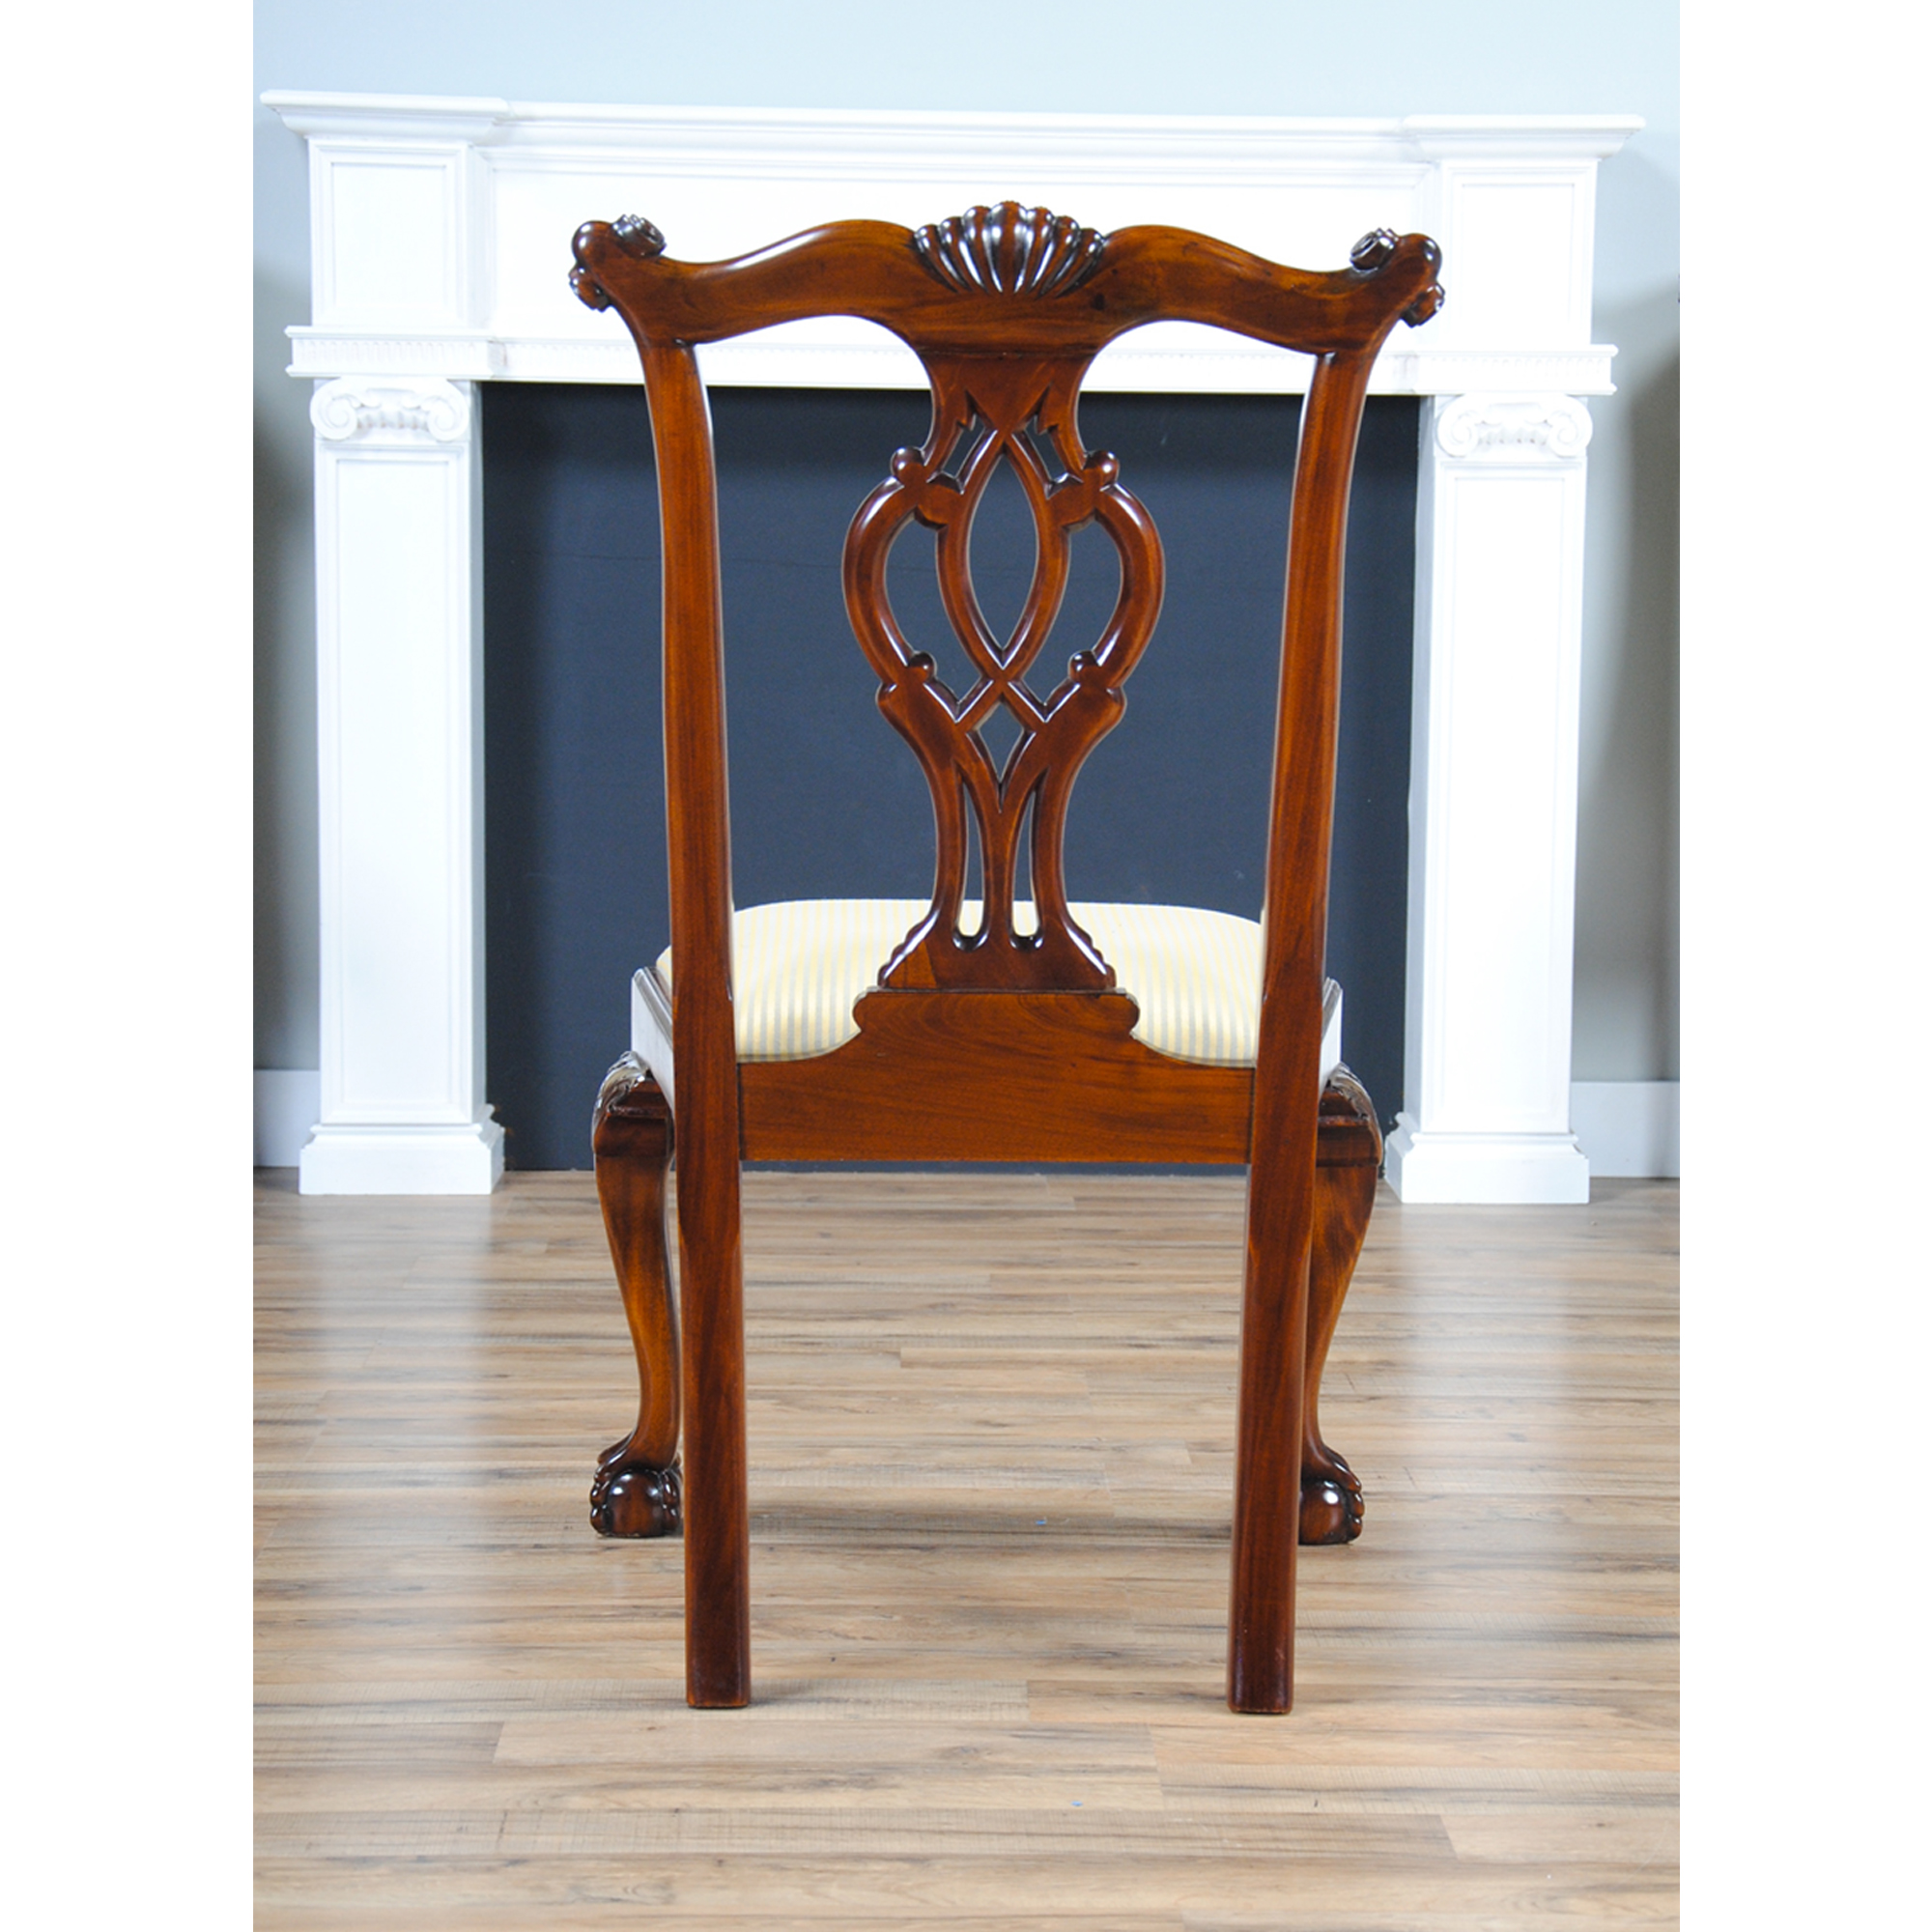 Philadelphia Chippendale Side Chair, Niagara Furniture